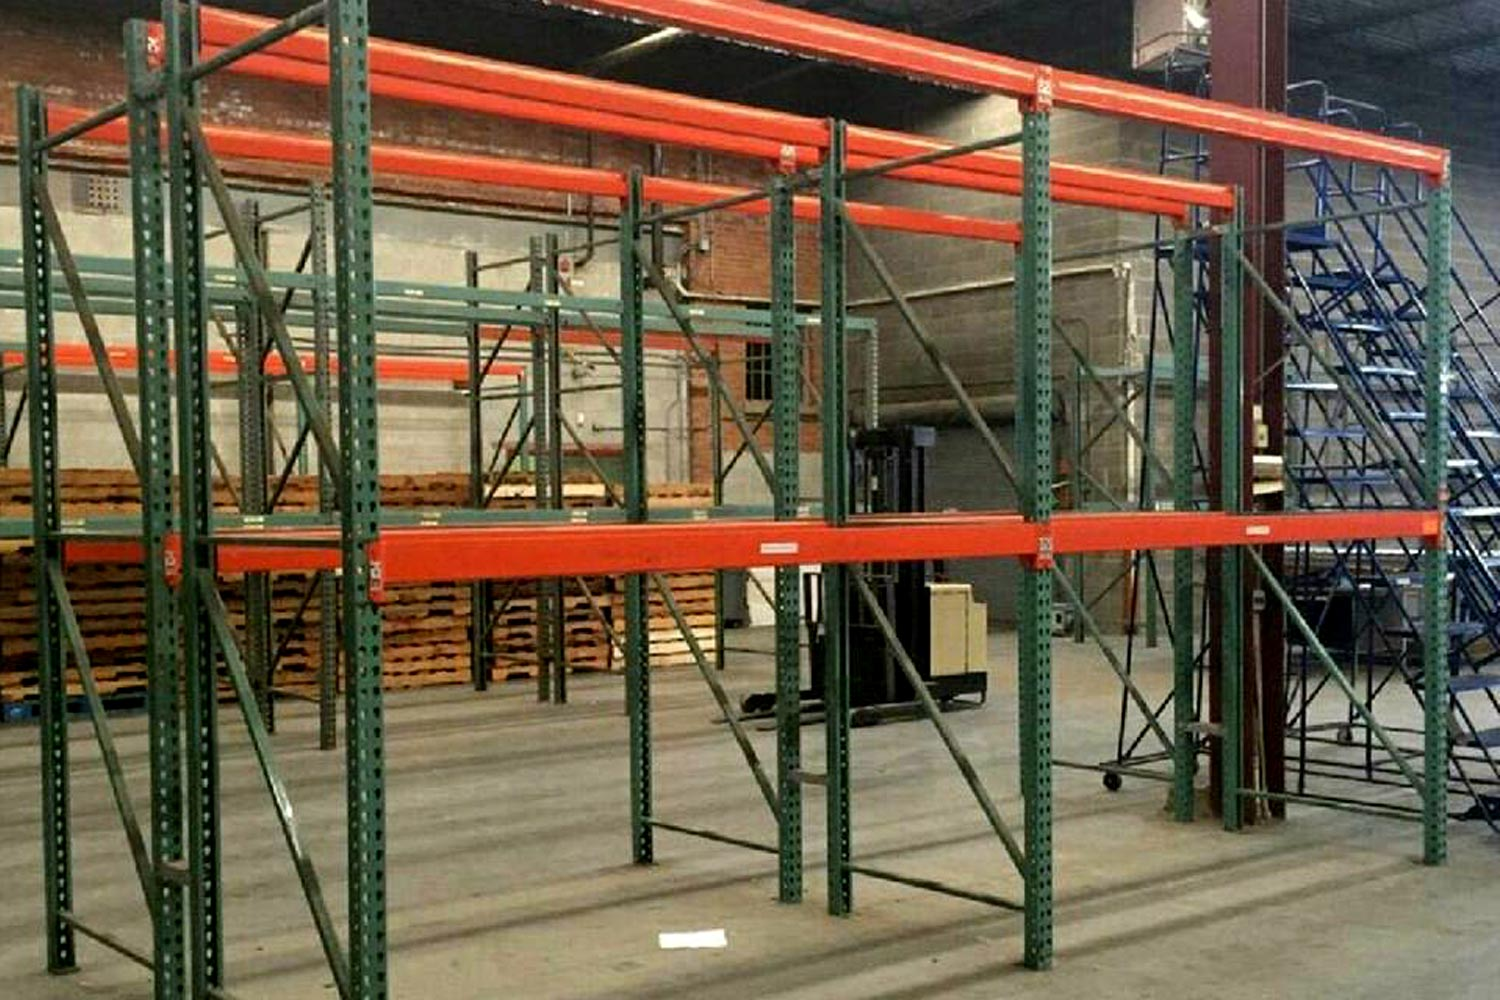 Photo of pallet racks in a warehouse